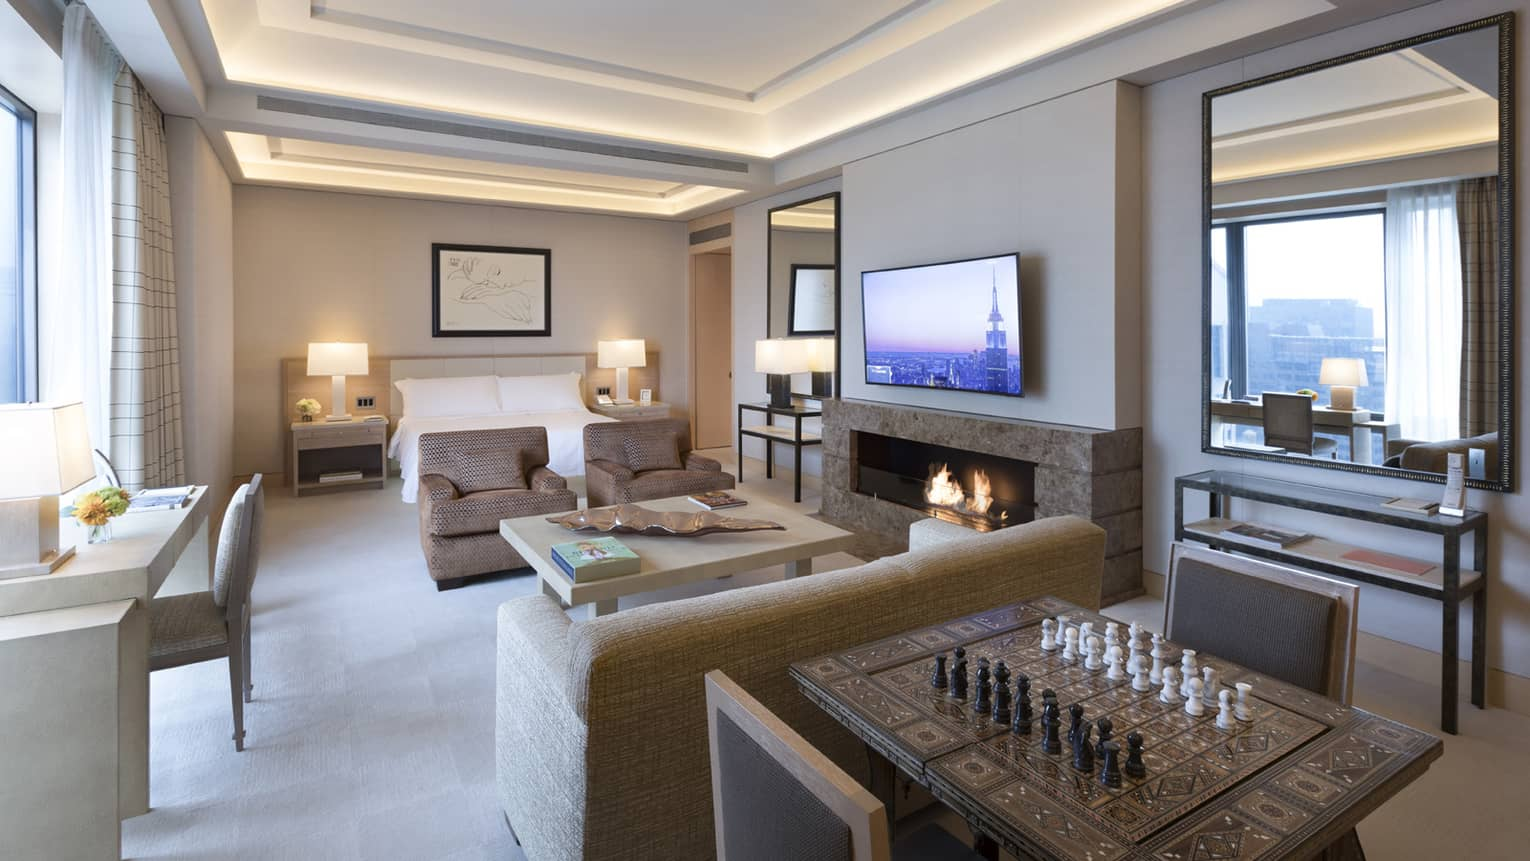 Gotham Suite table with chess board, seating area by fireplace and bed, desk at window